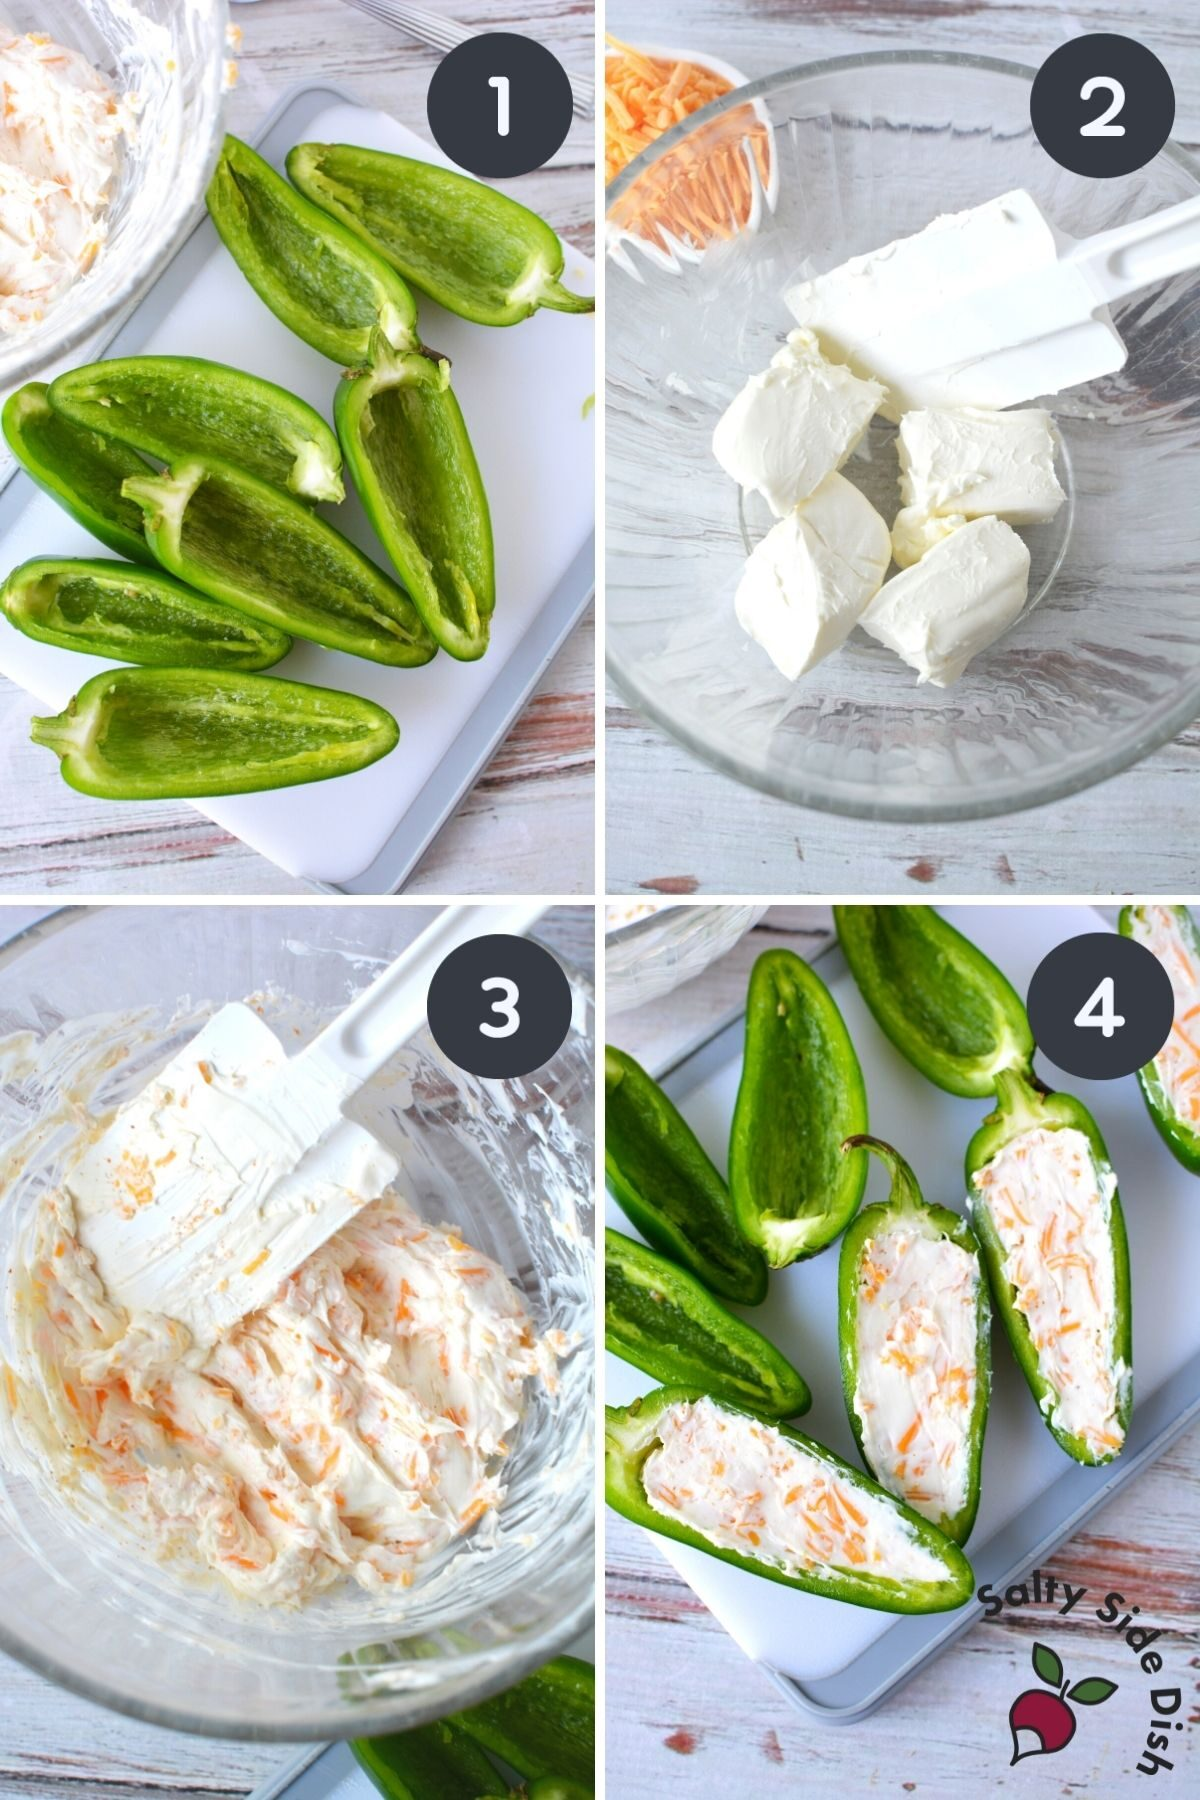 4 images showcasing how to stuff a jalapeno popper.